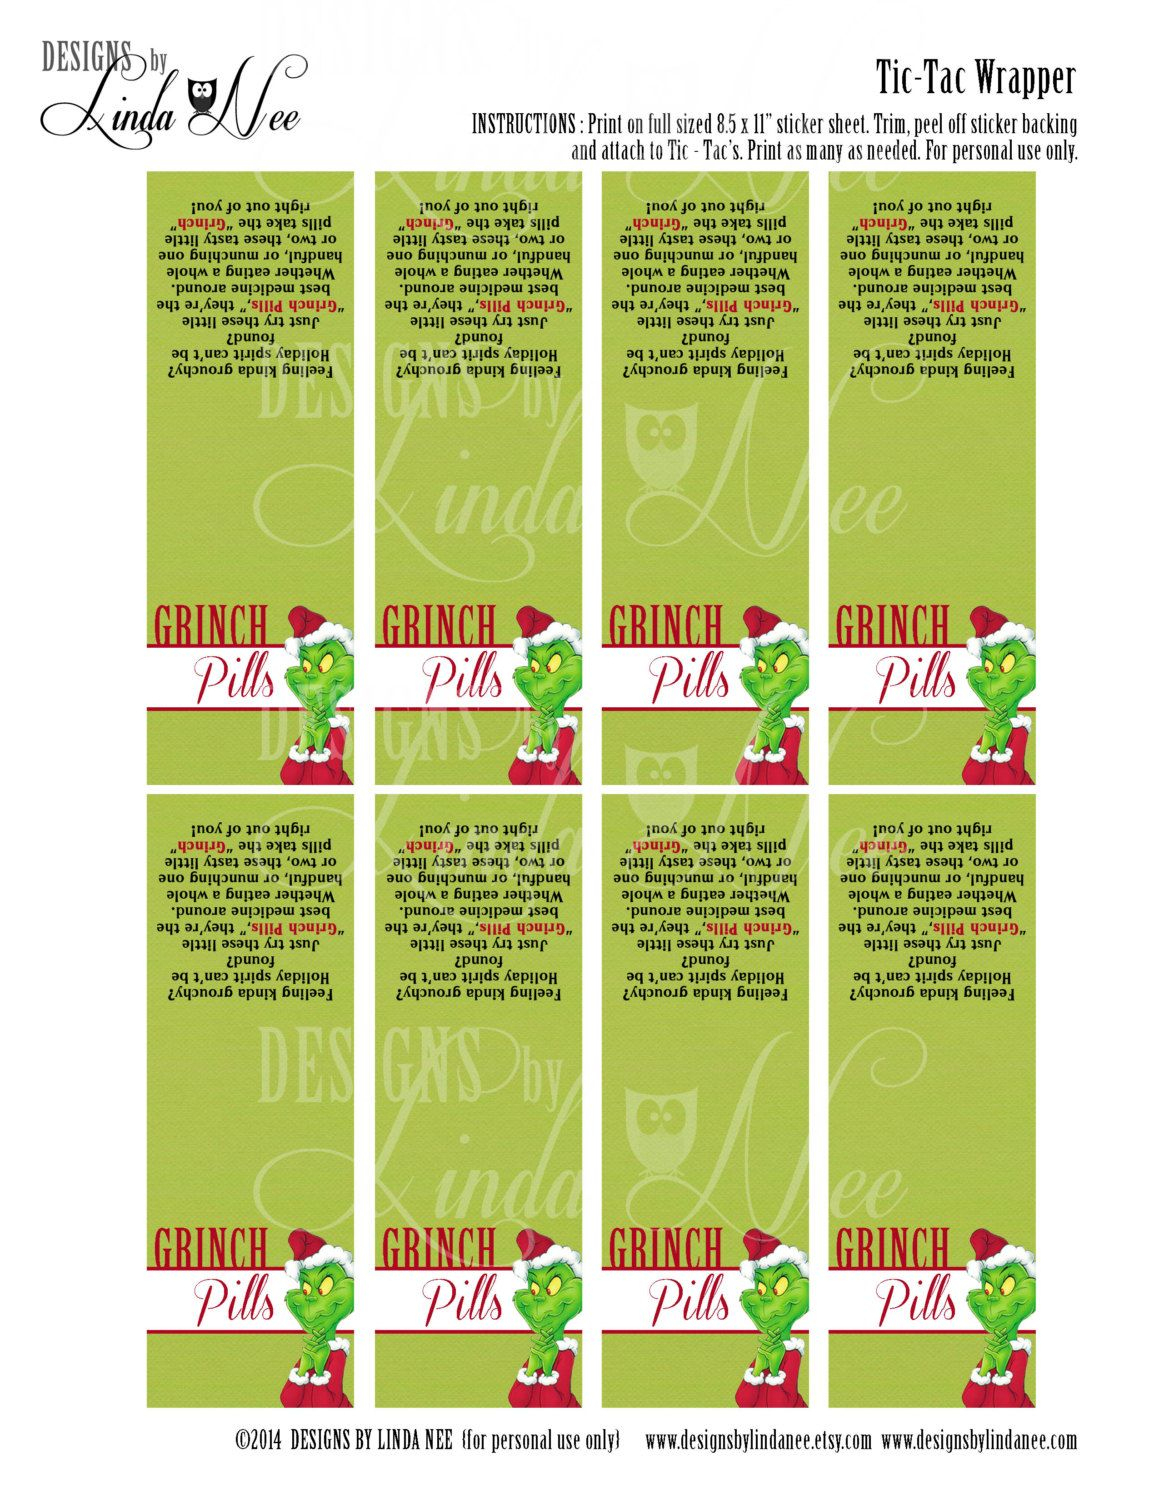 Tic Tac Grinch Pills With Poem Printabledesignsbylindanee - Grinch Pills Free Printable